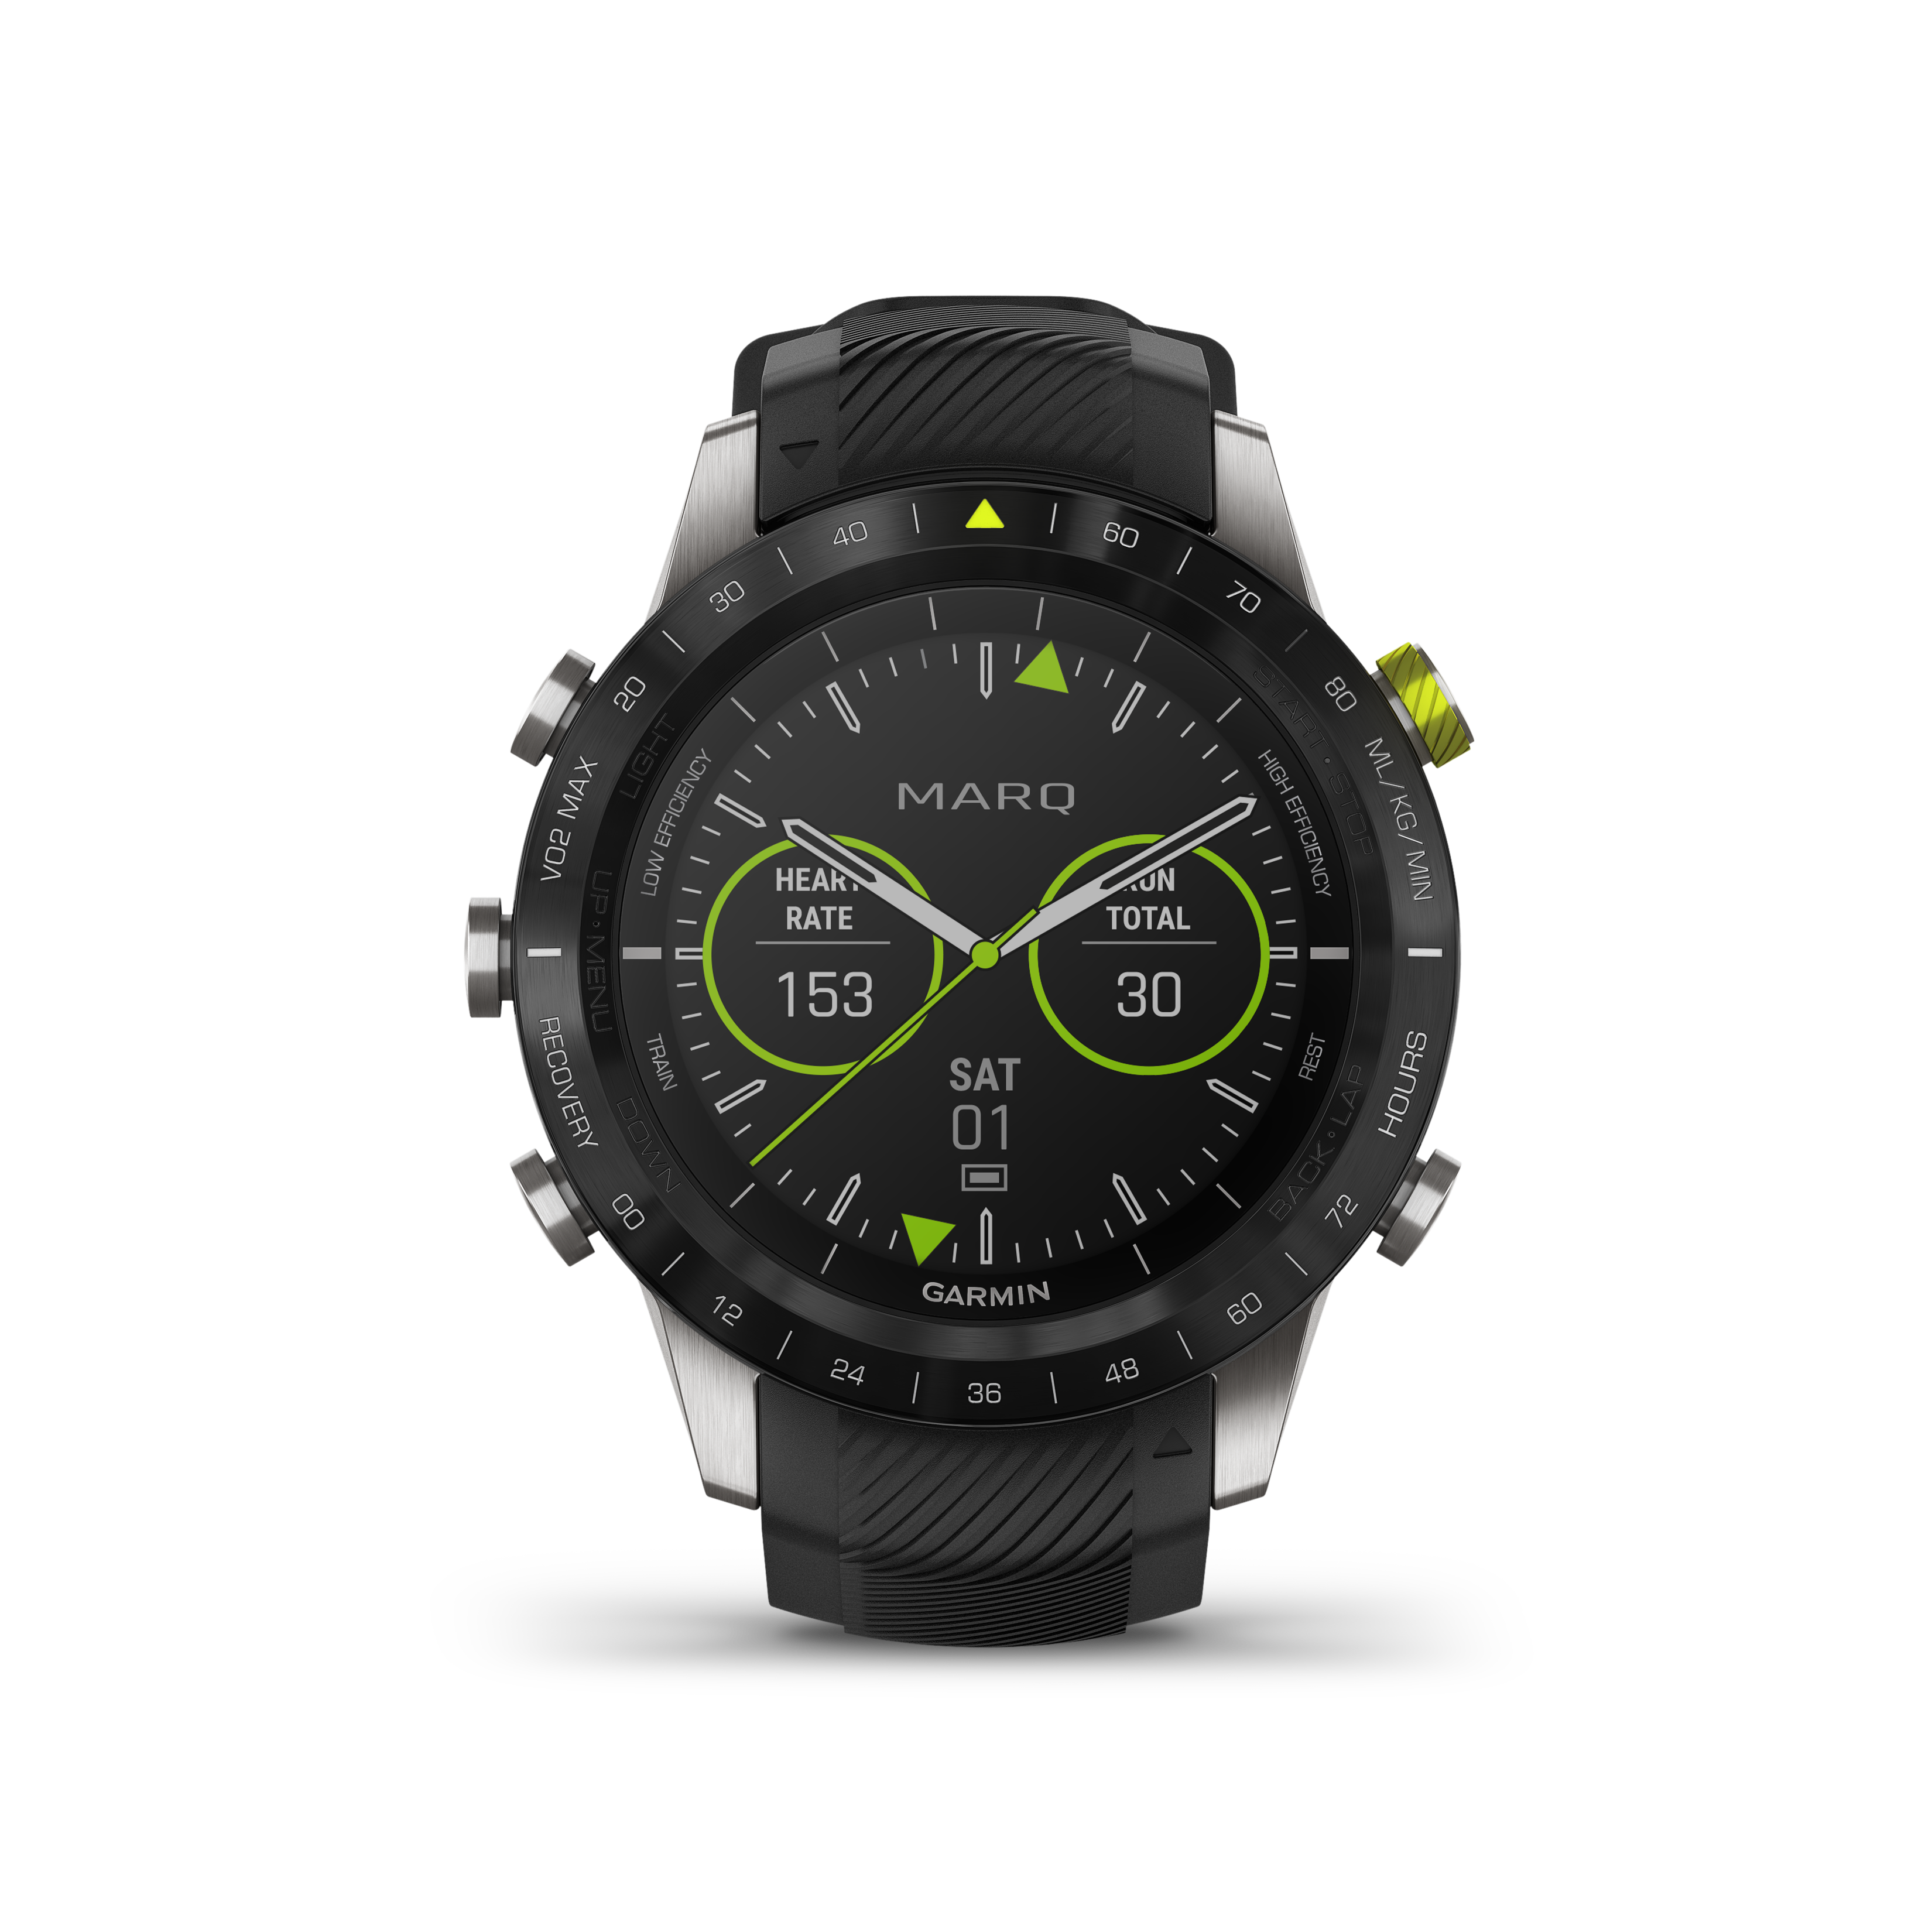 Garmin Marq Athlete.